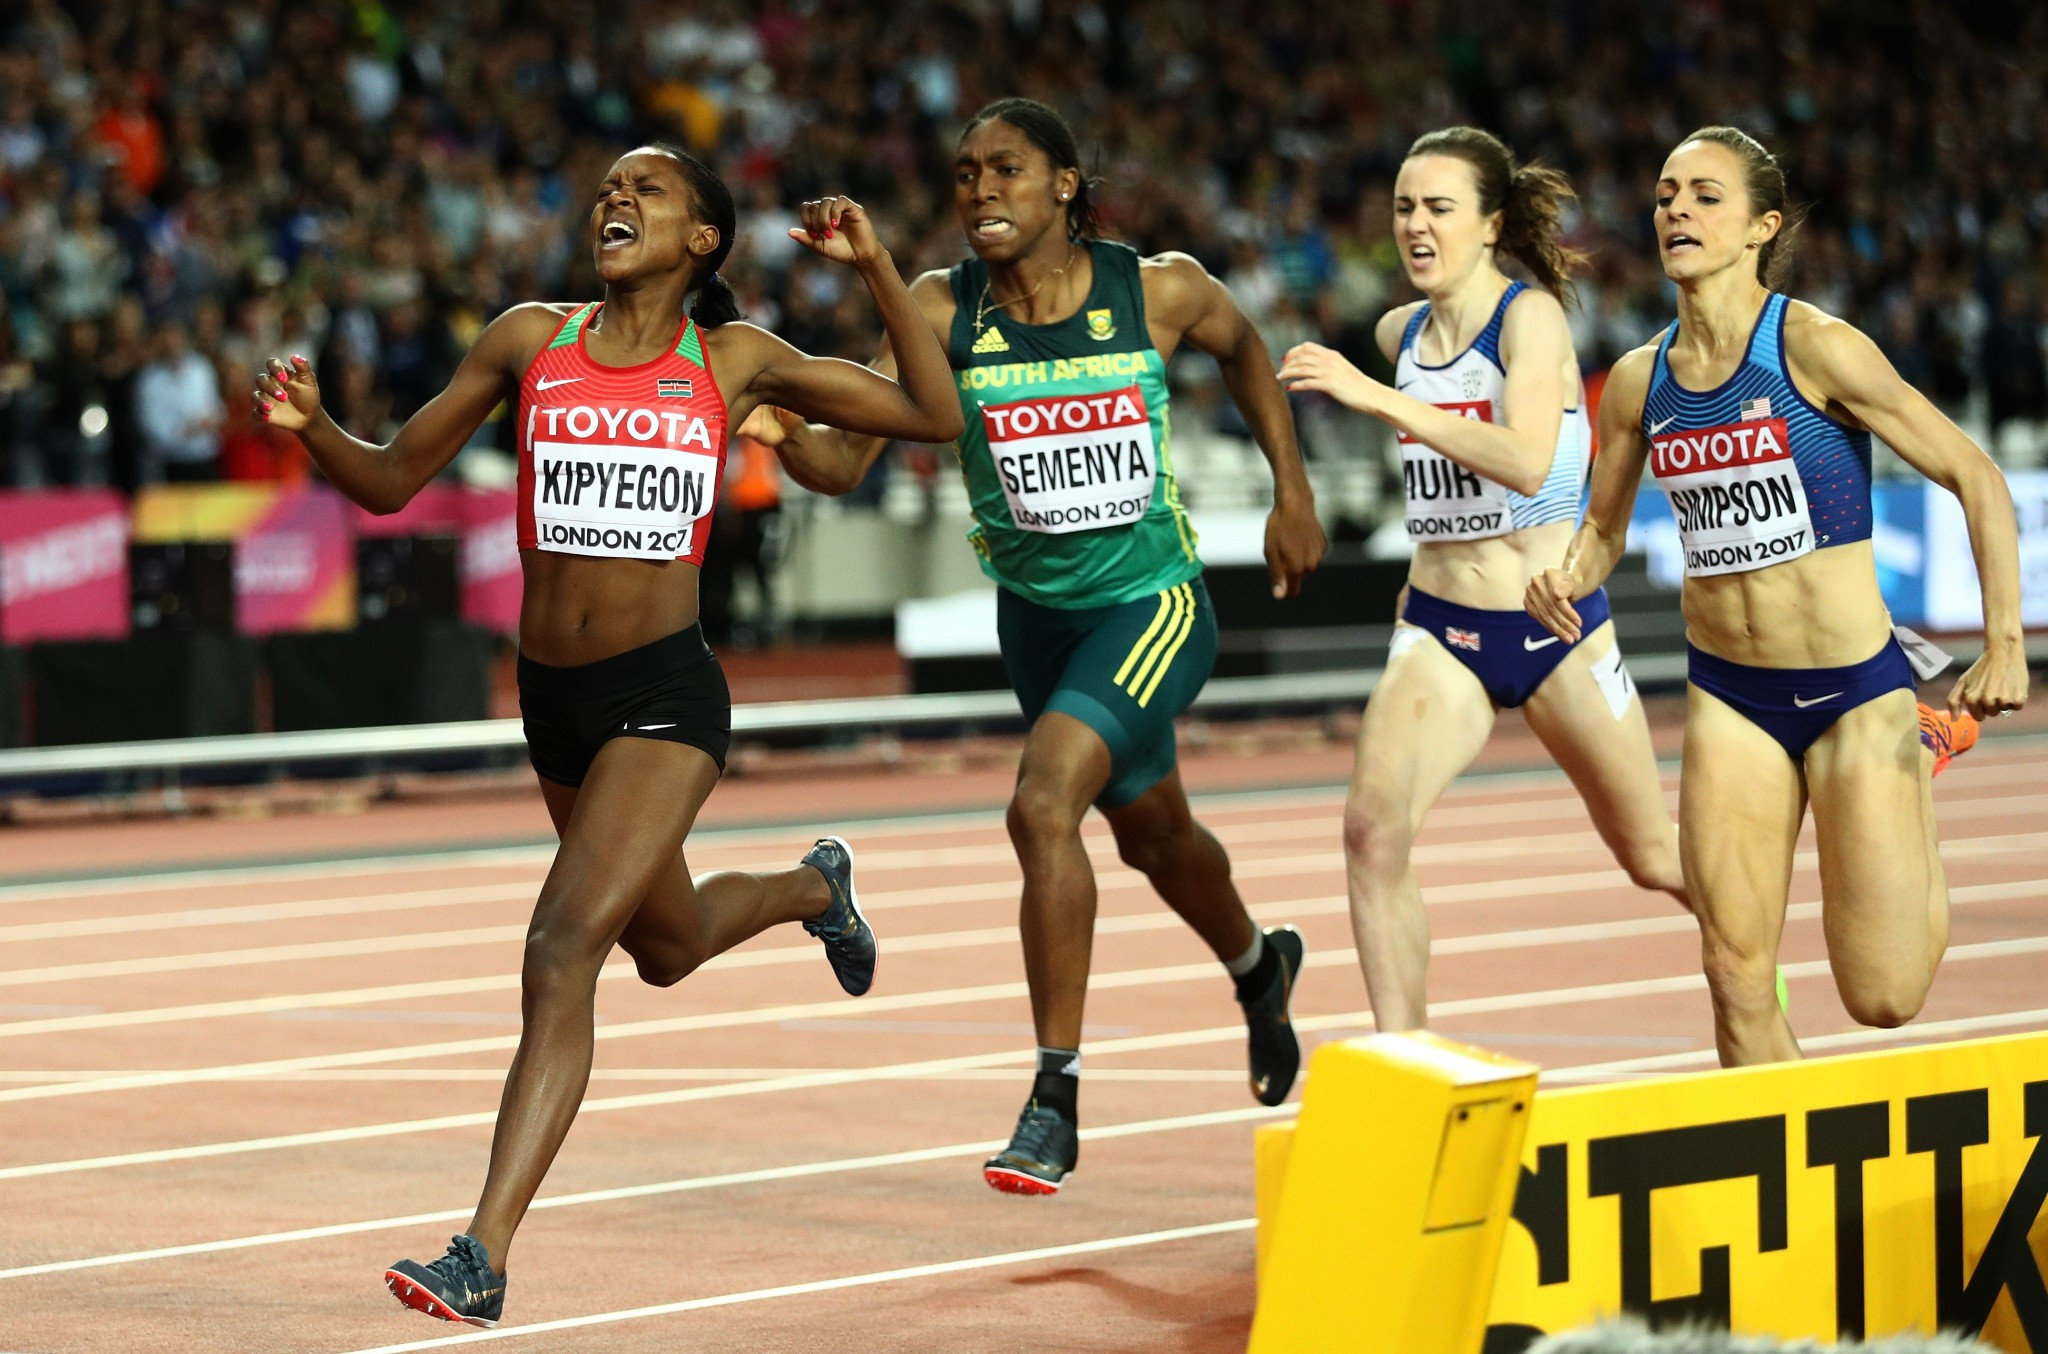 Laura Muir finished fourth in the 1500m at the IAAF World Championships in London ©Getty Images